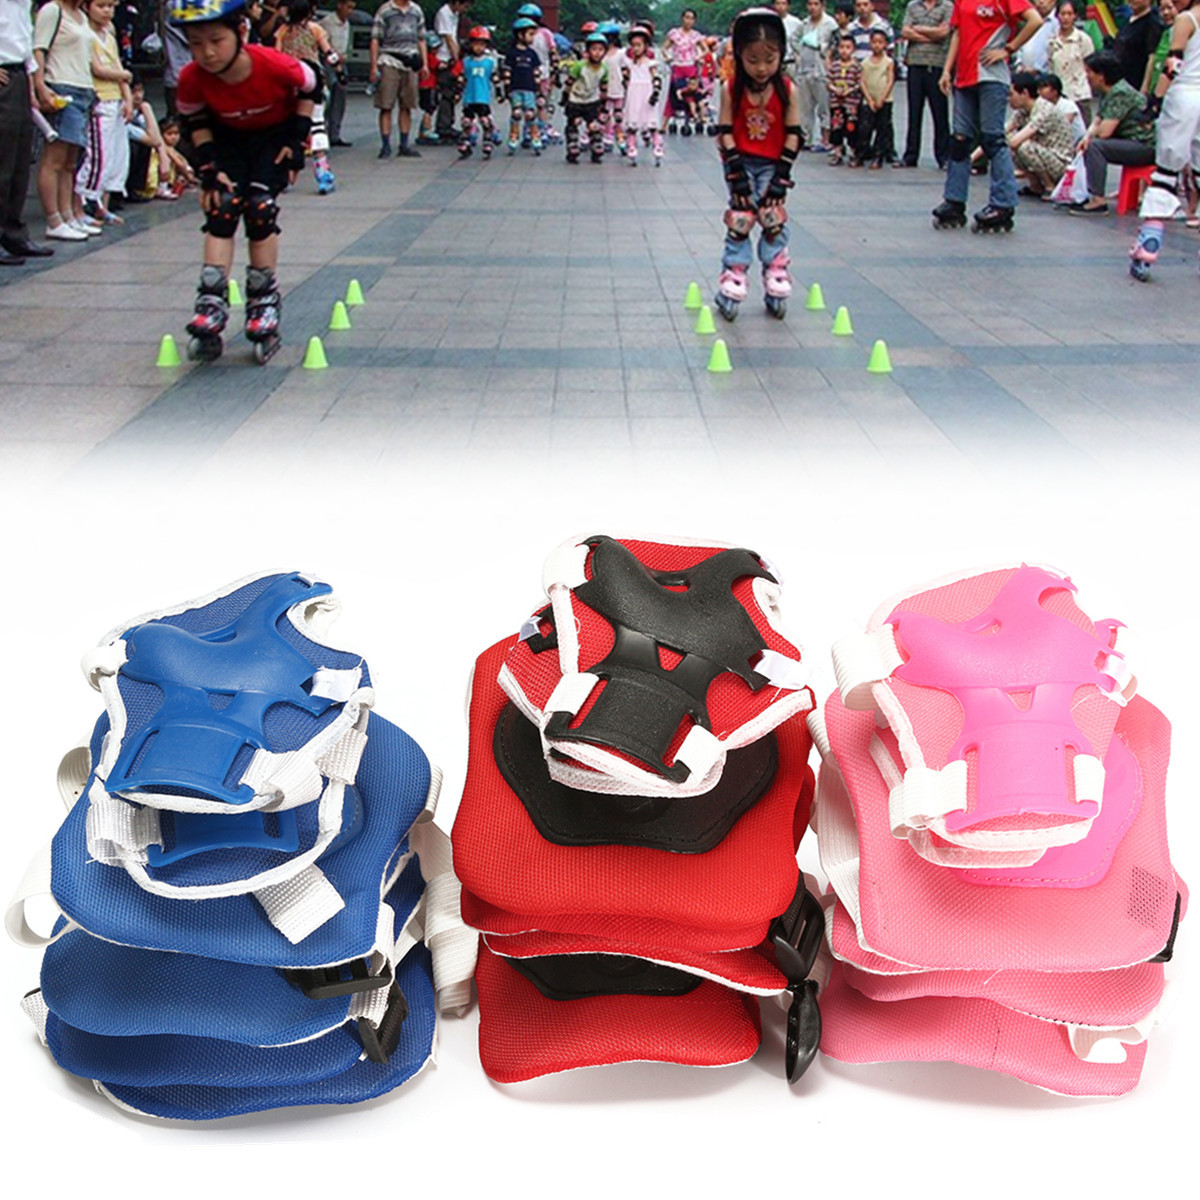 6Pcs Protector For Children Kids Elbow Knee Pad Wrist Guard in Skateboard Skating,Bicycling, Mountaineering[Blue, Red,... by